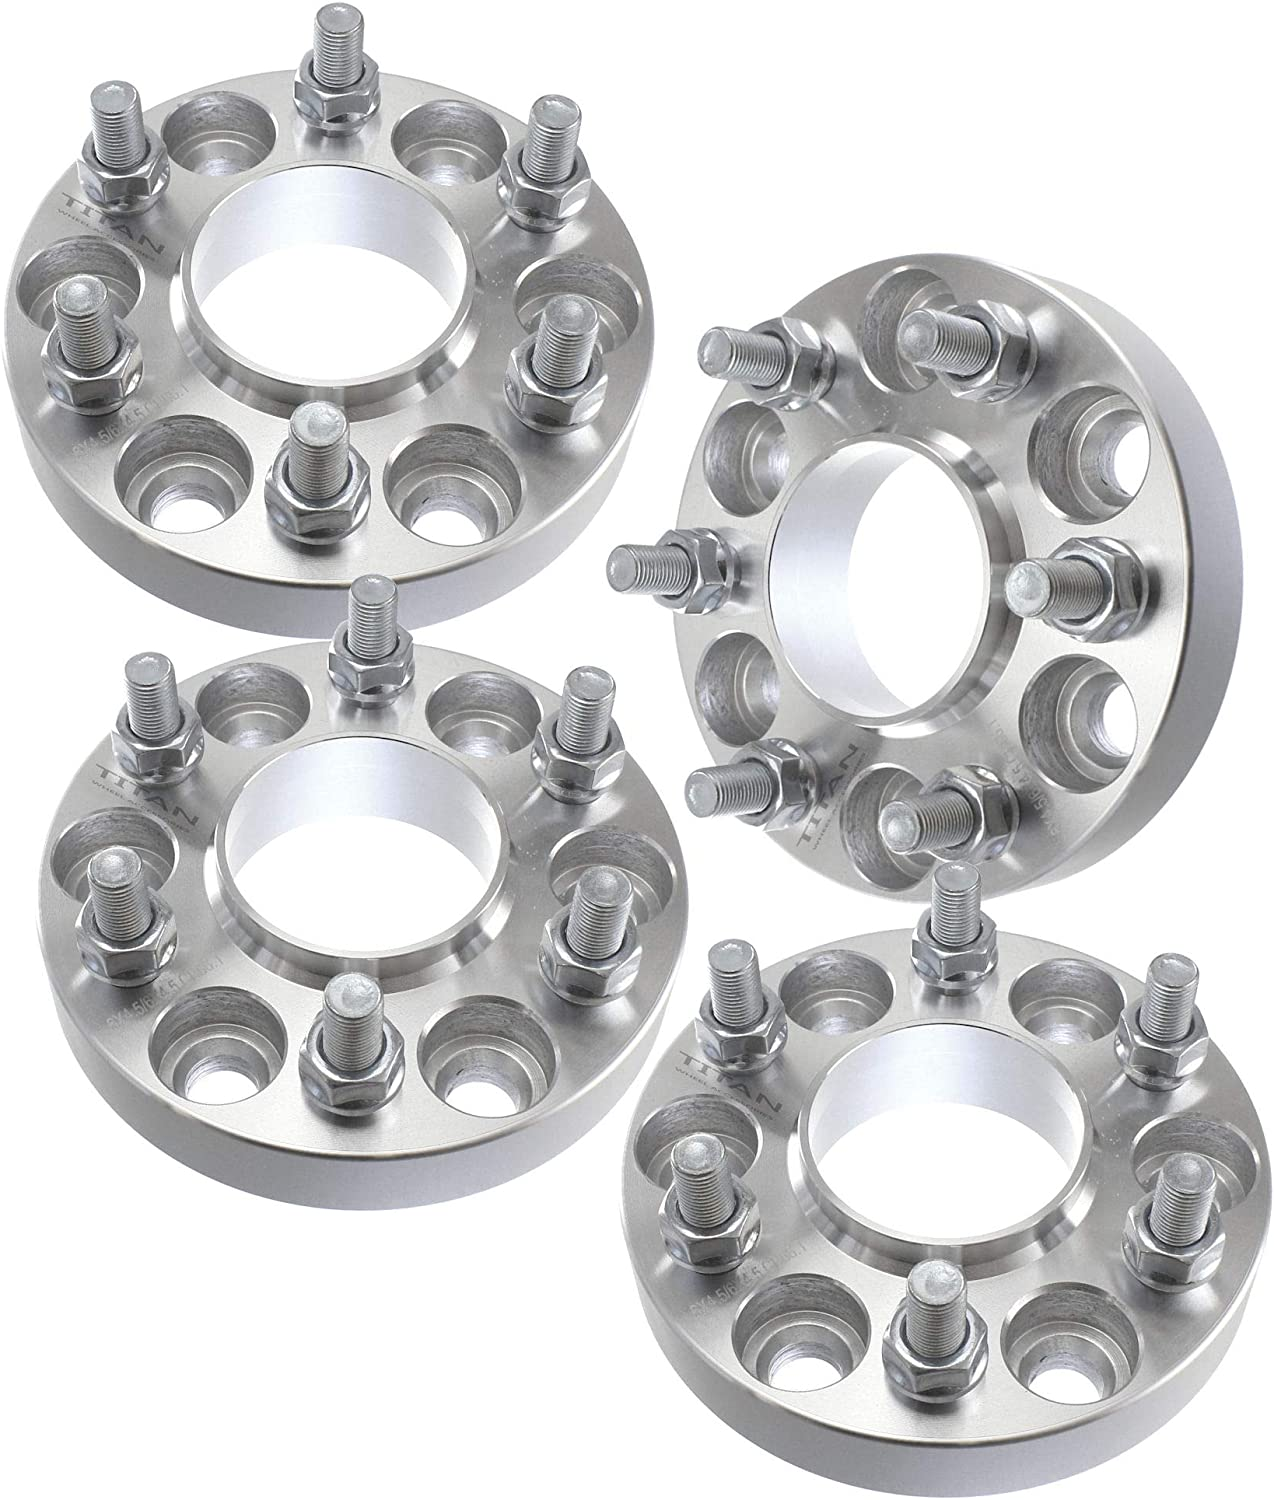 4 Pieces 1 25mm Hub Centric Wheel Spacers Bolt Pattern 6x5.5 6x139.7 Thread Pitch 14x1.5 Fits Chevy